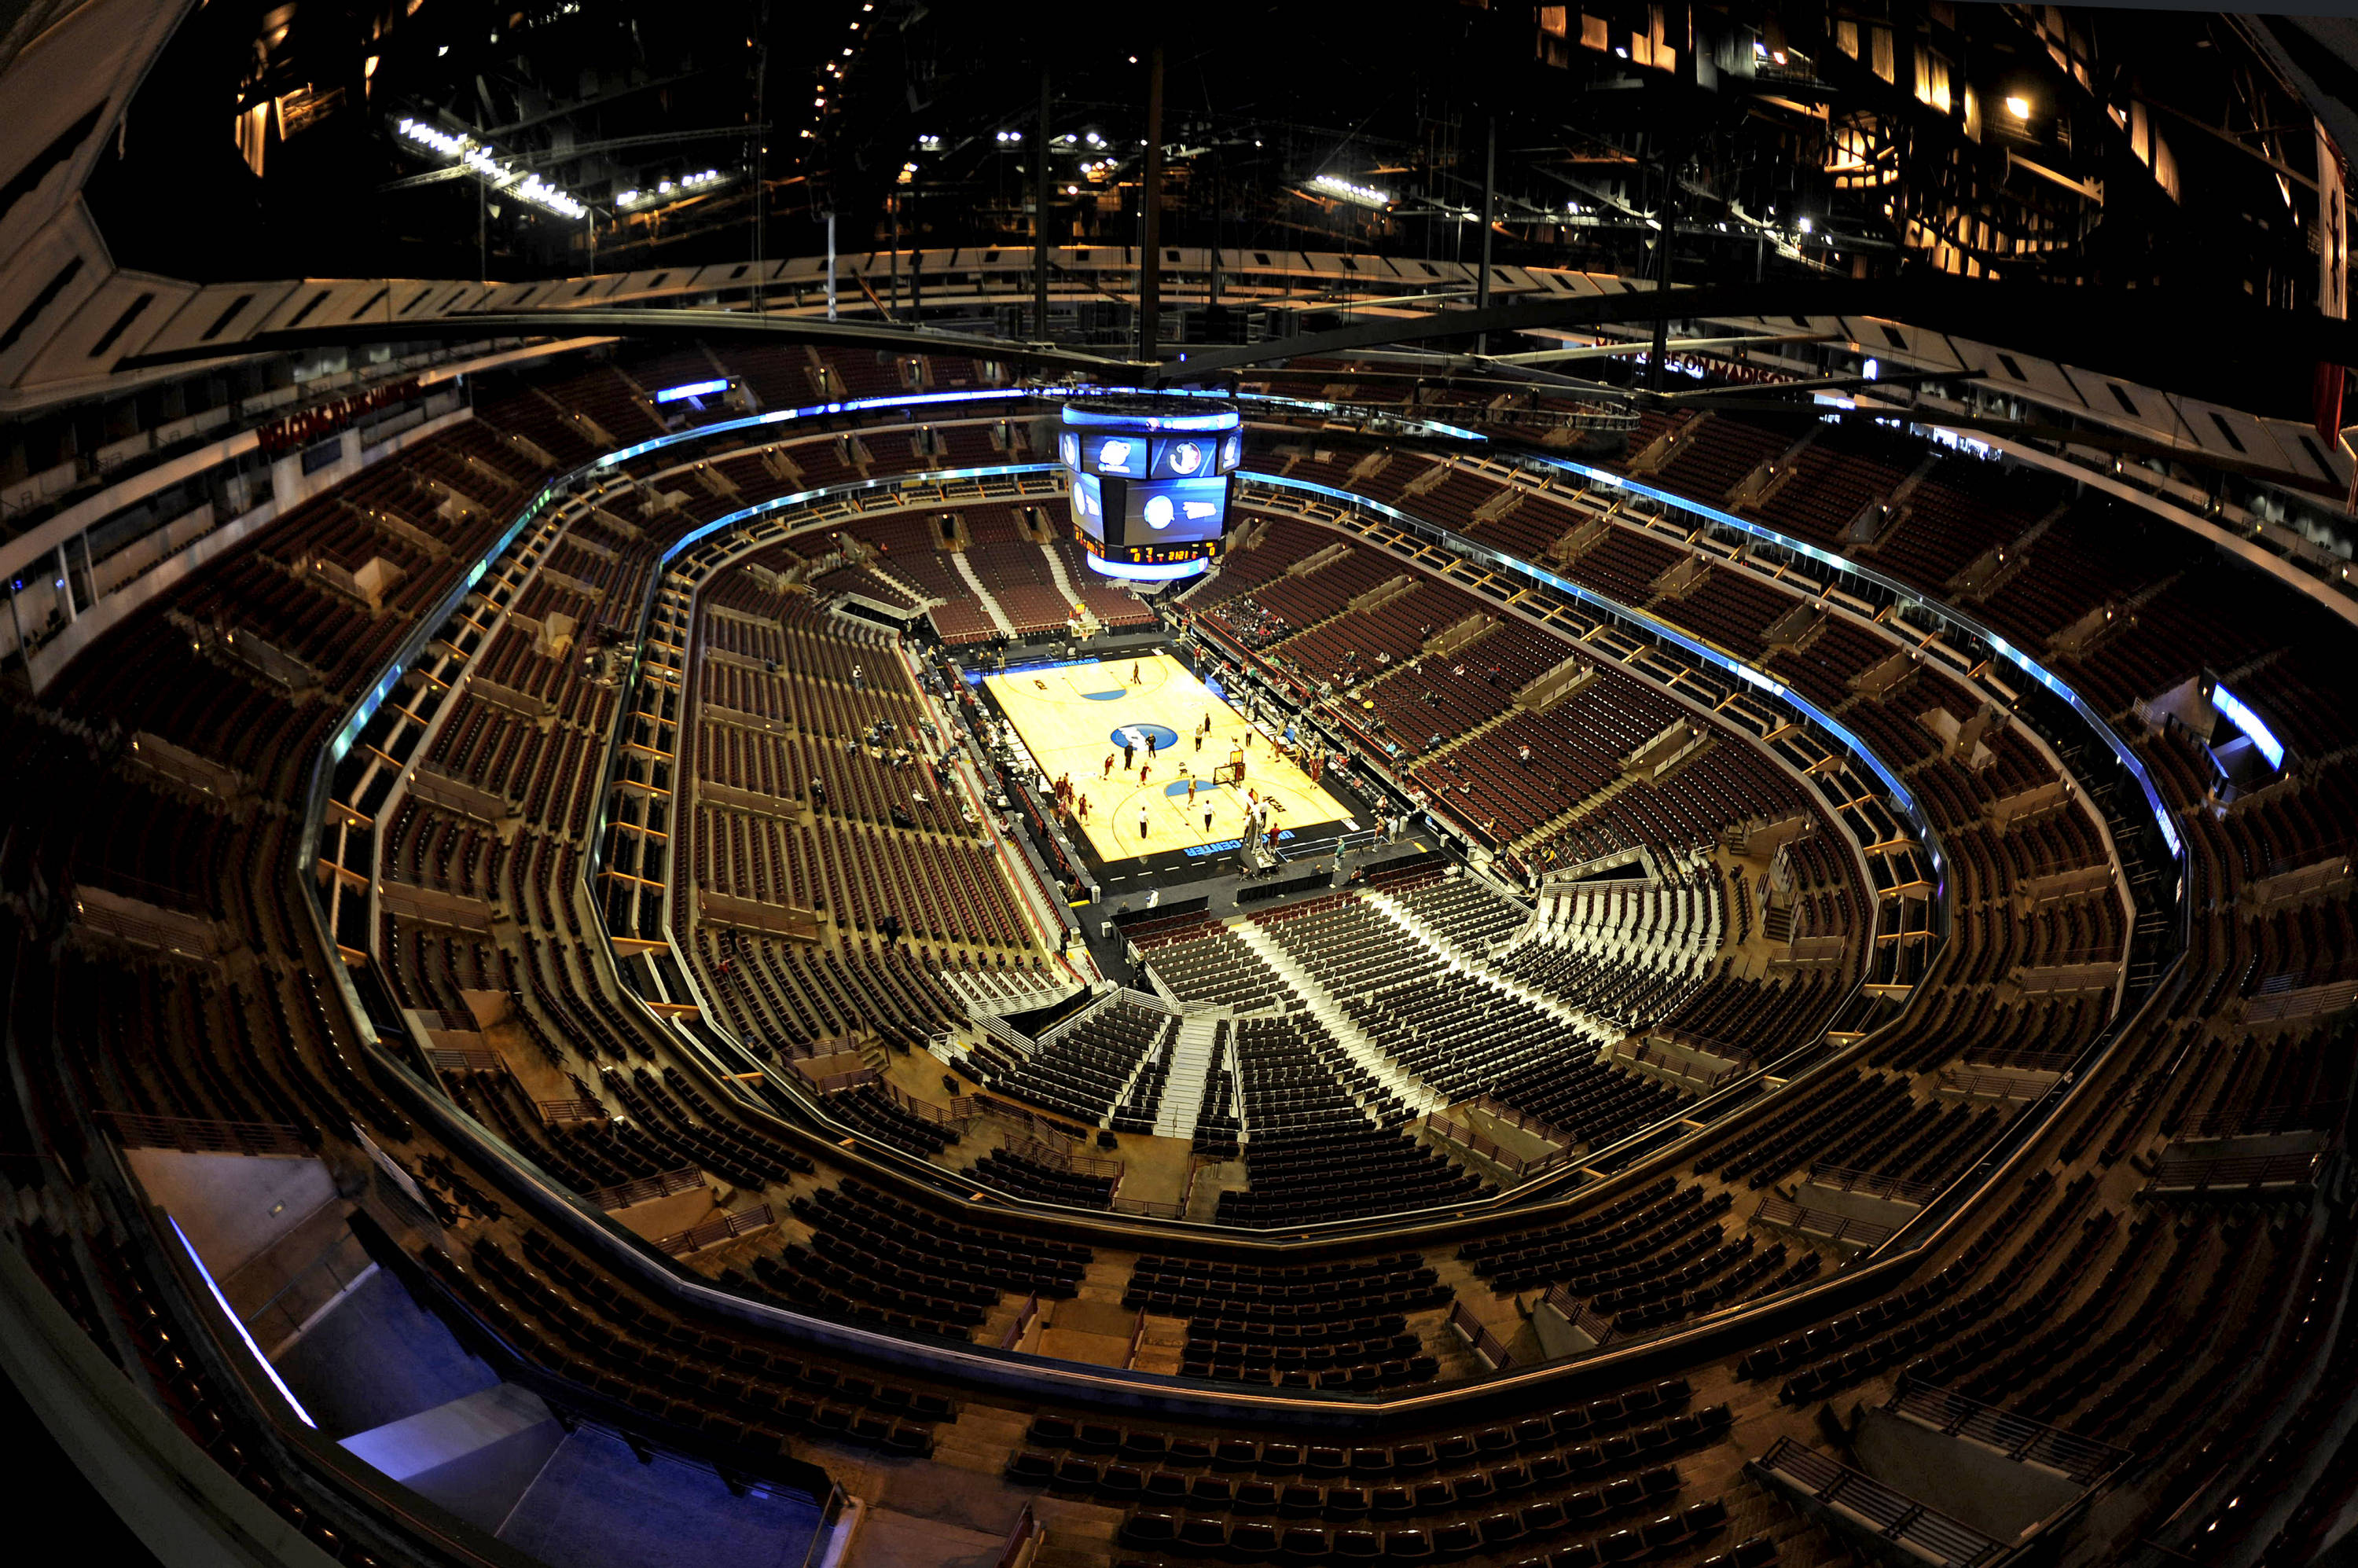 A view from the top of the United Center